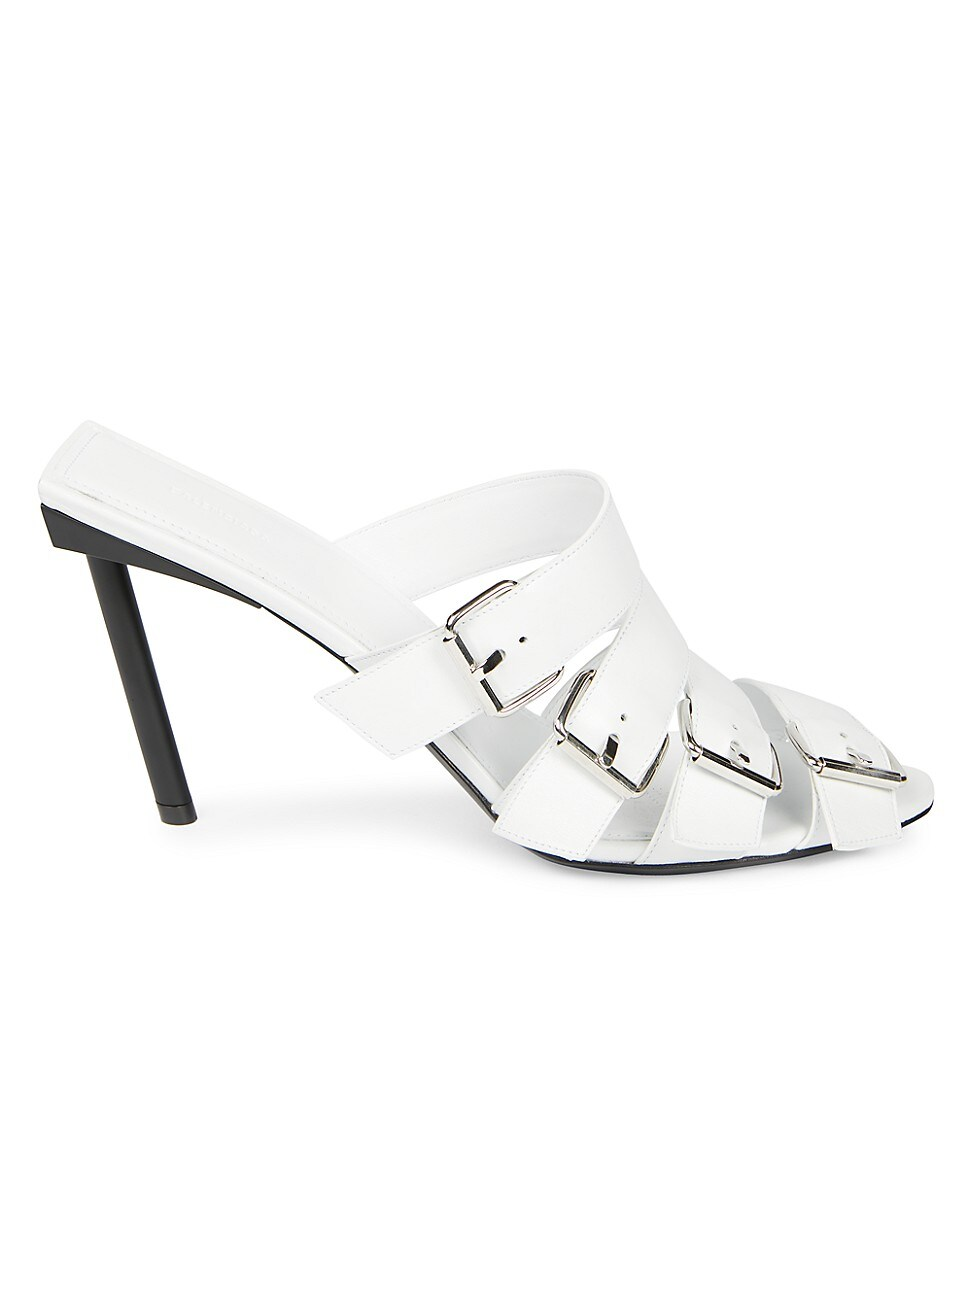 Balenciaga WOMEN'S BUCKLE LEATHER MULES